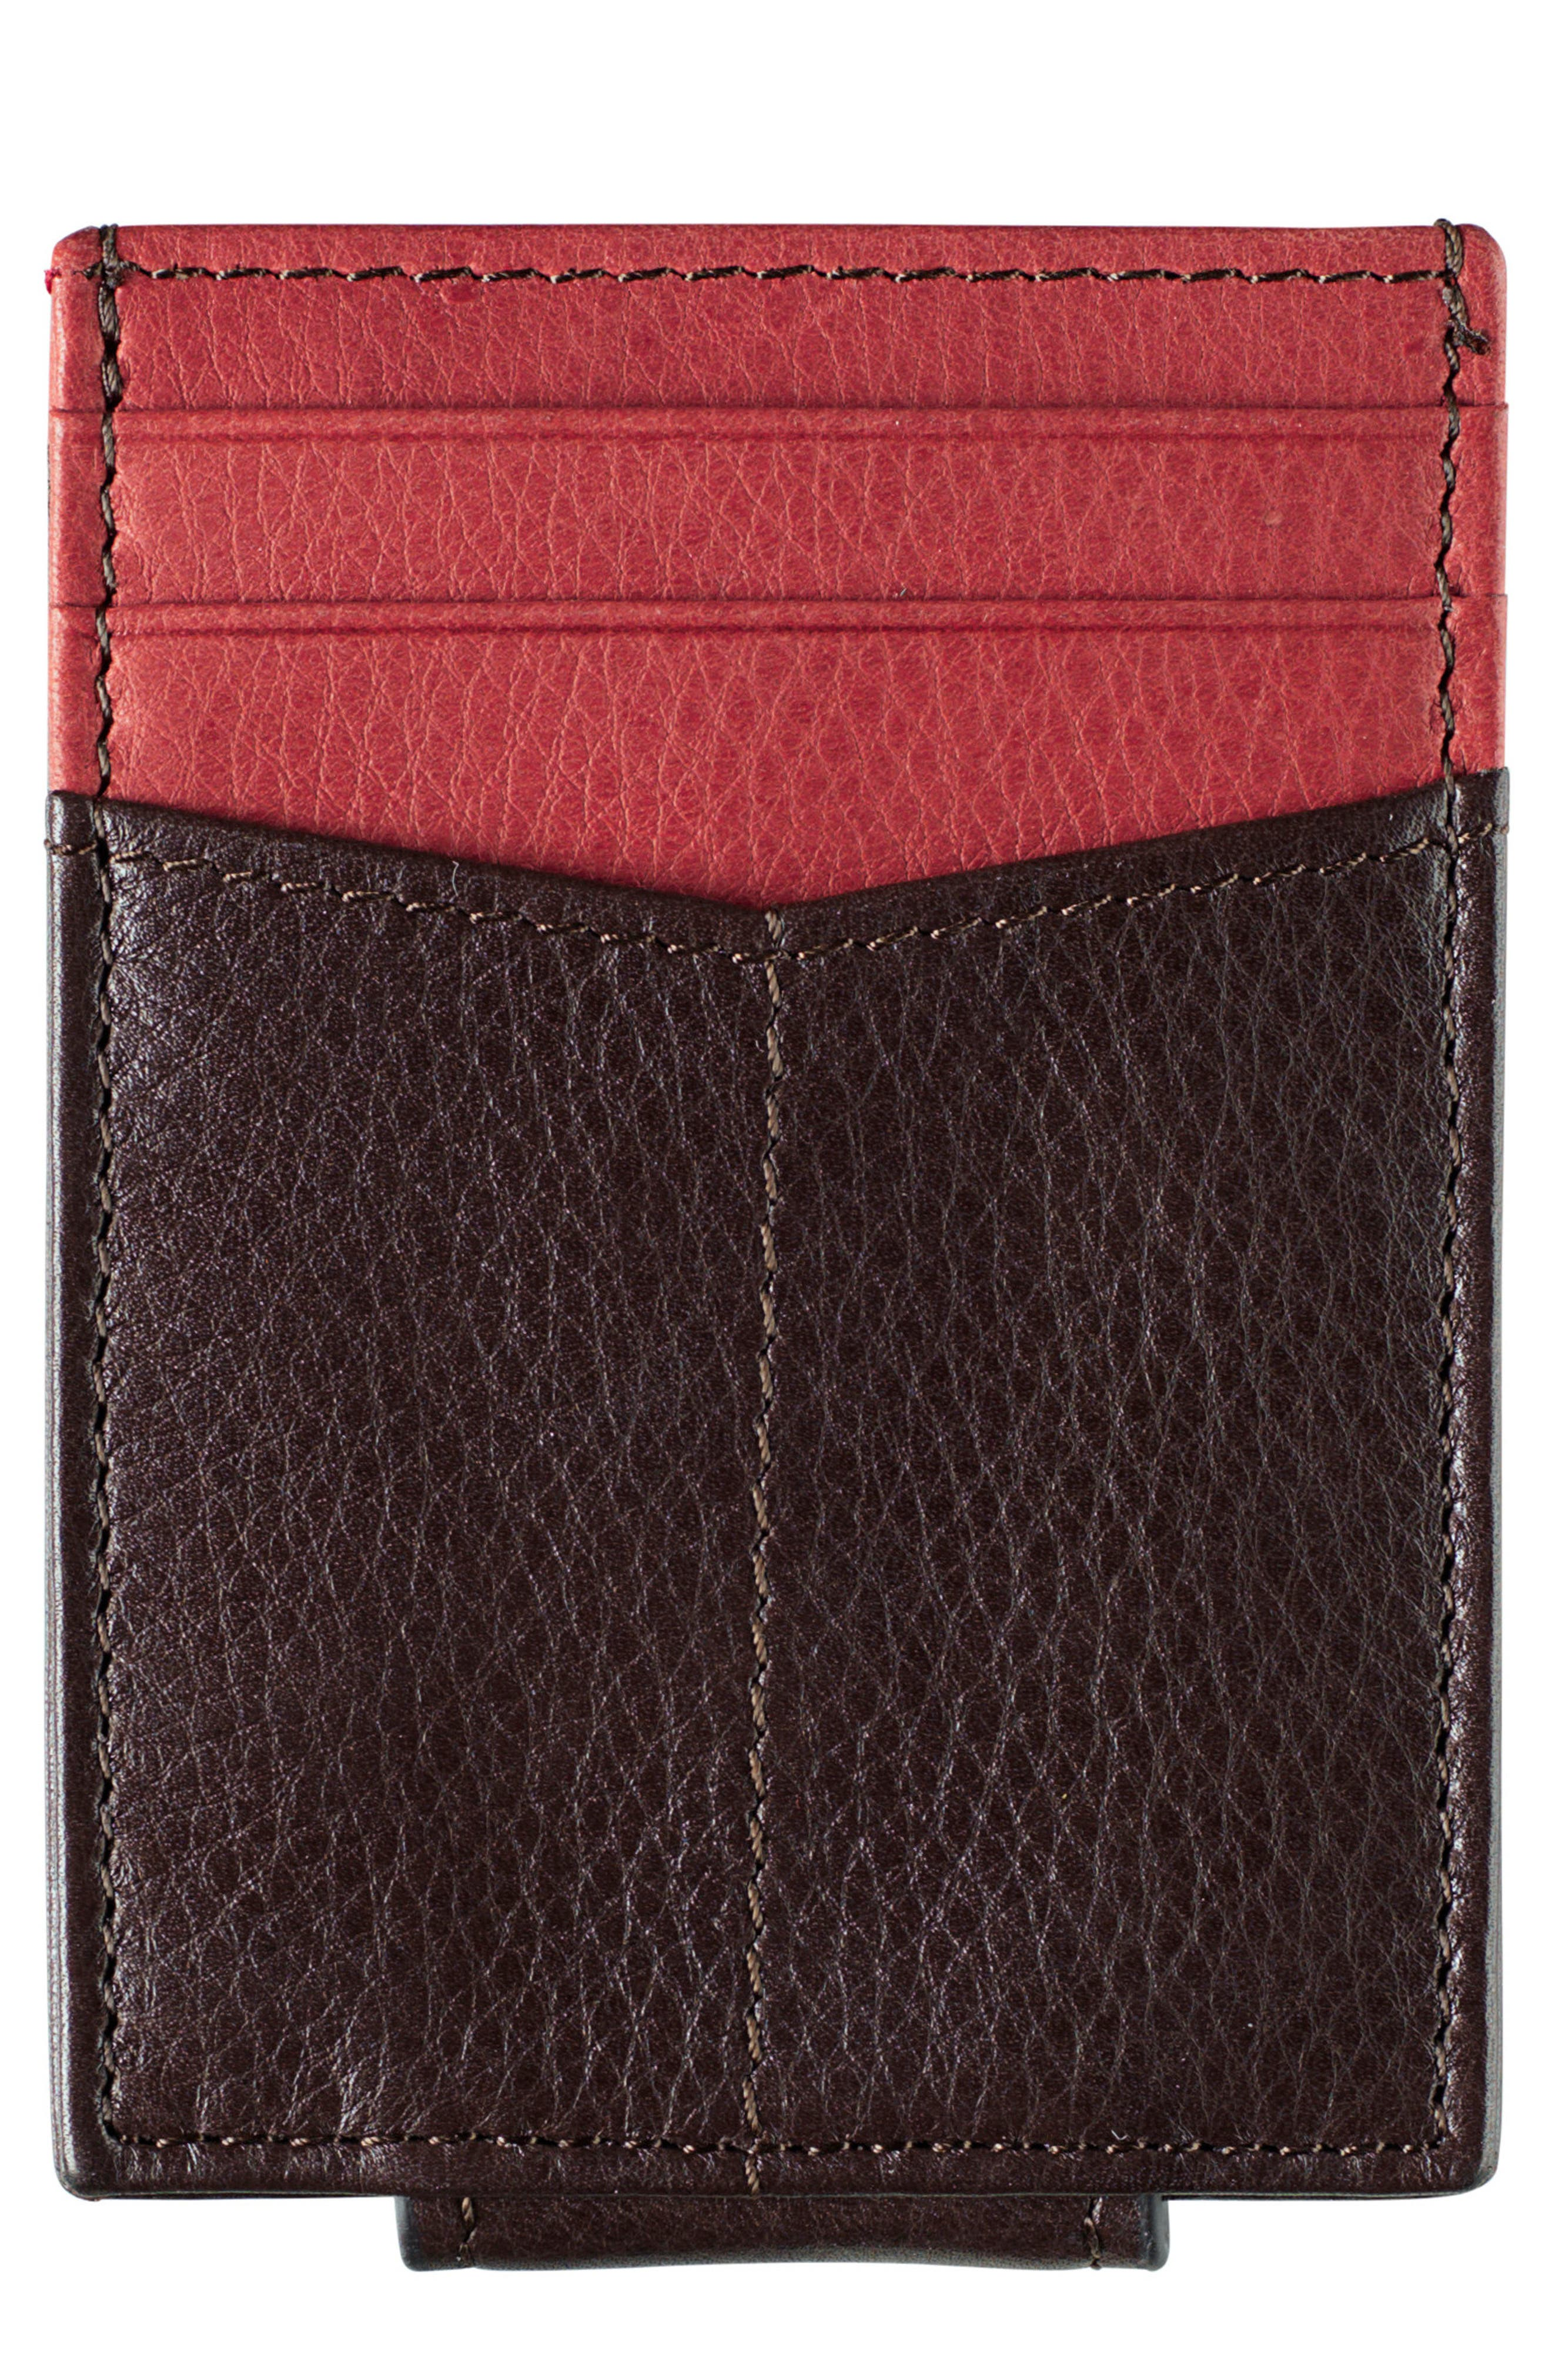 A slim, minimalist leather card case features a thumb-slide ID window on one side and a pair of card pockets on the other, along with a central multipurpose compartment for stashing receipts and cash. Style Name: Johnston & Murphy Leather Money Clip Card Case. Style Number: 5170549. Available in stores.